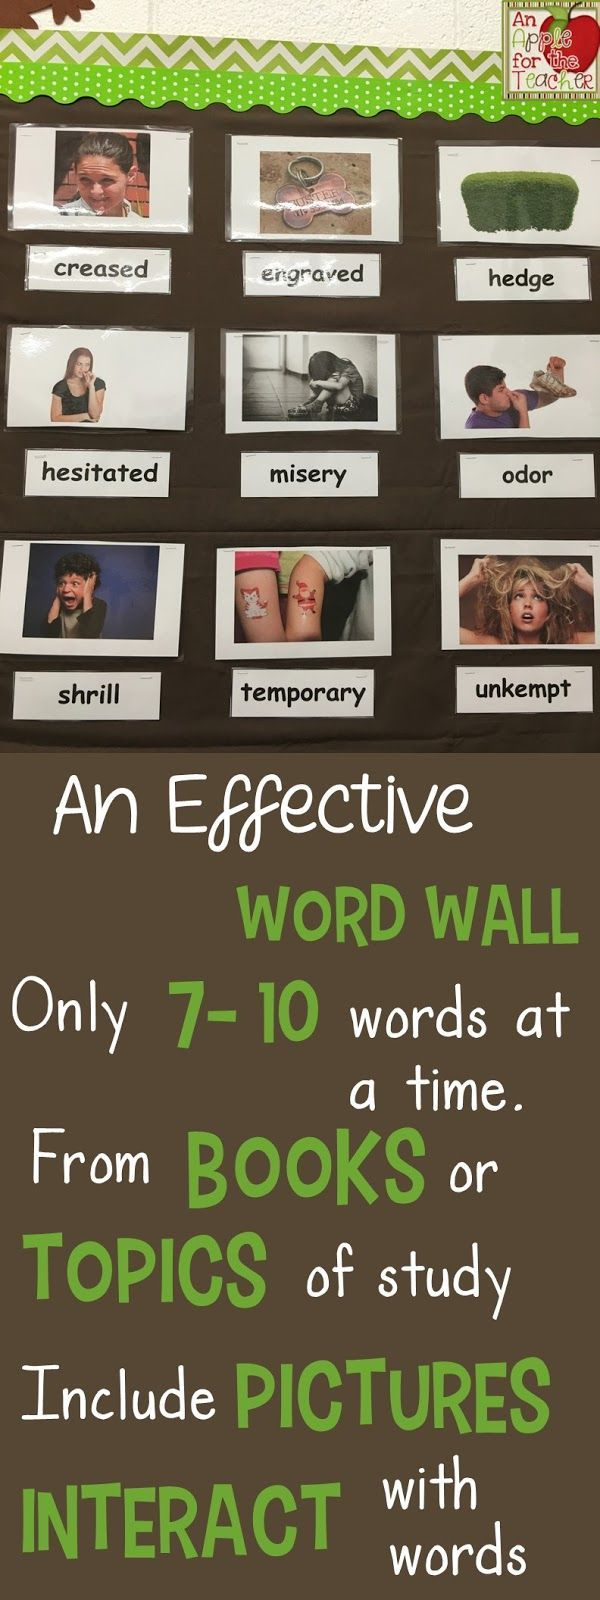 How to Make Your Word Wall More Effective